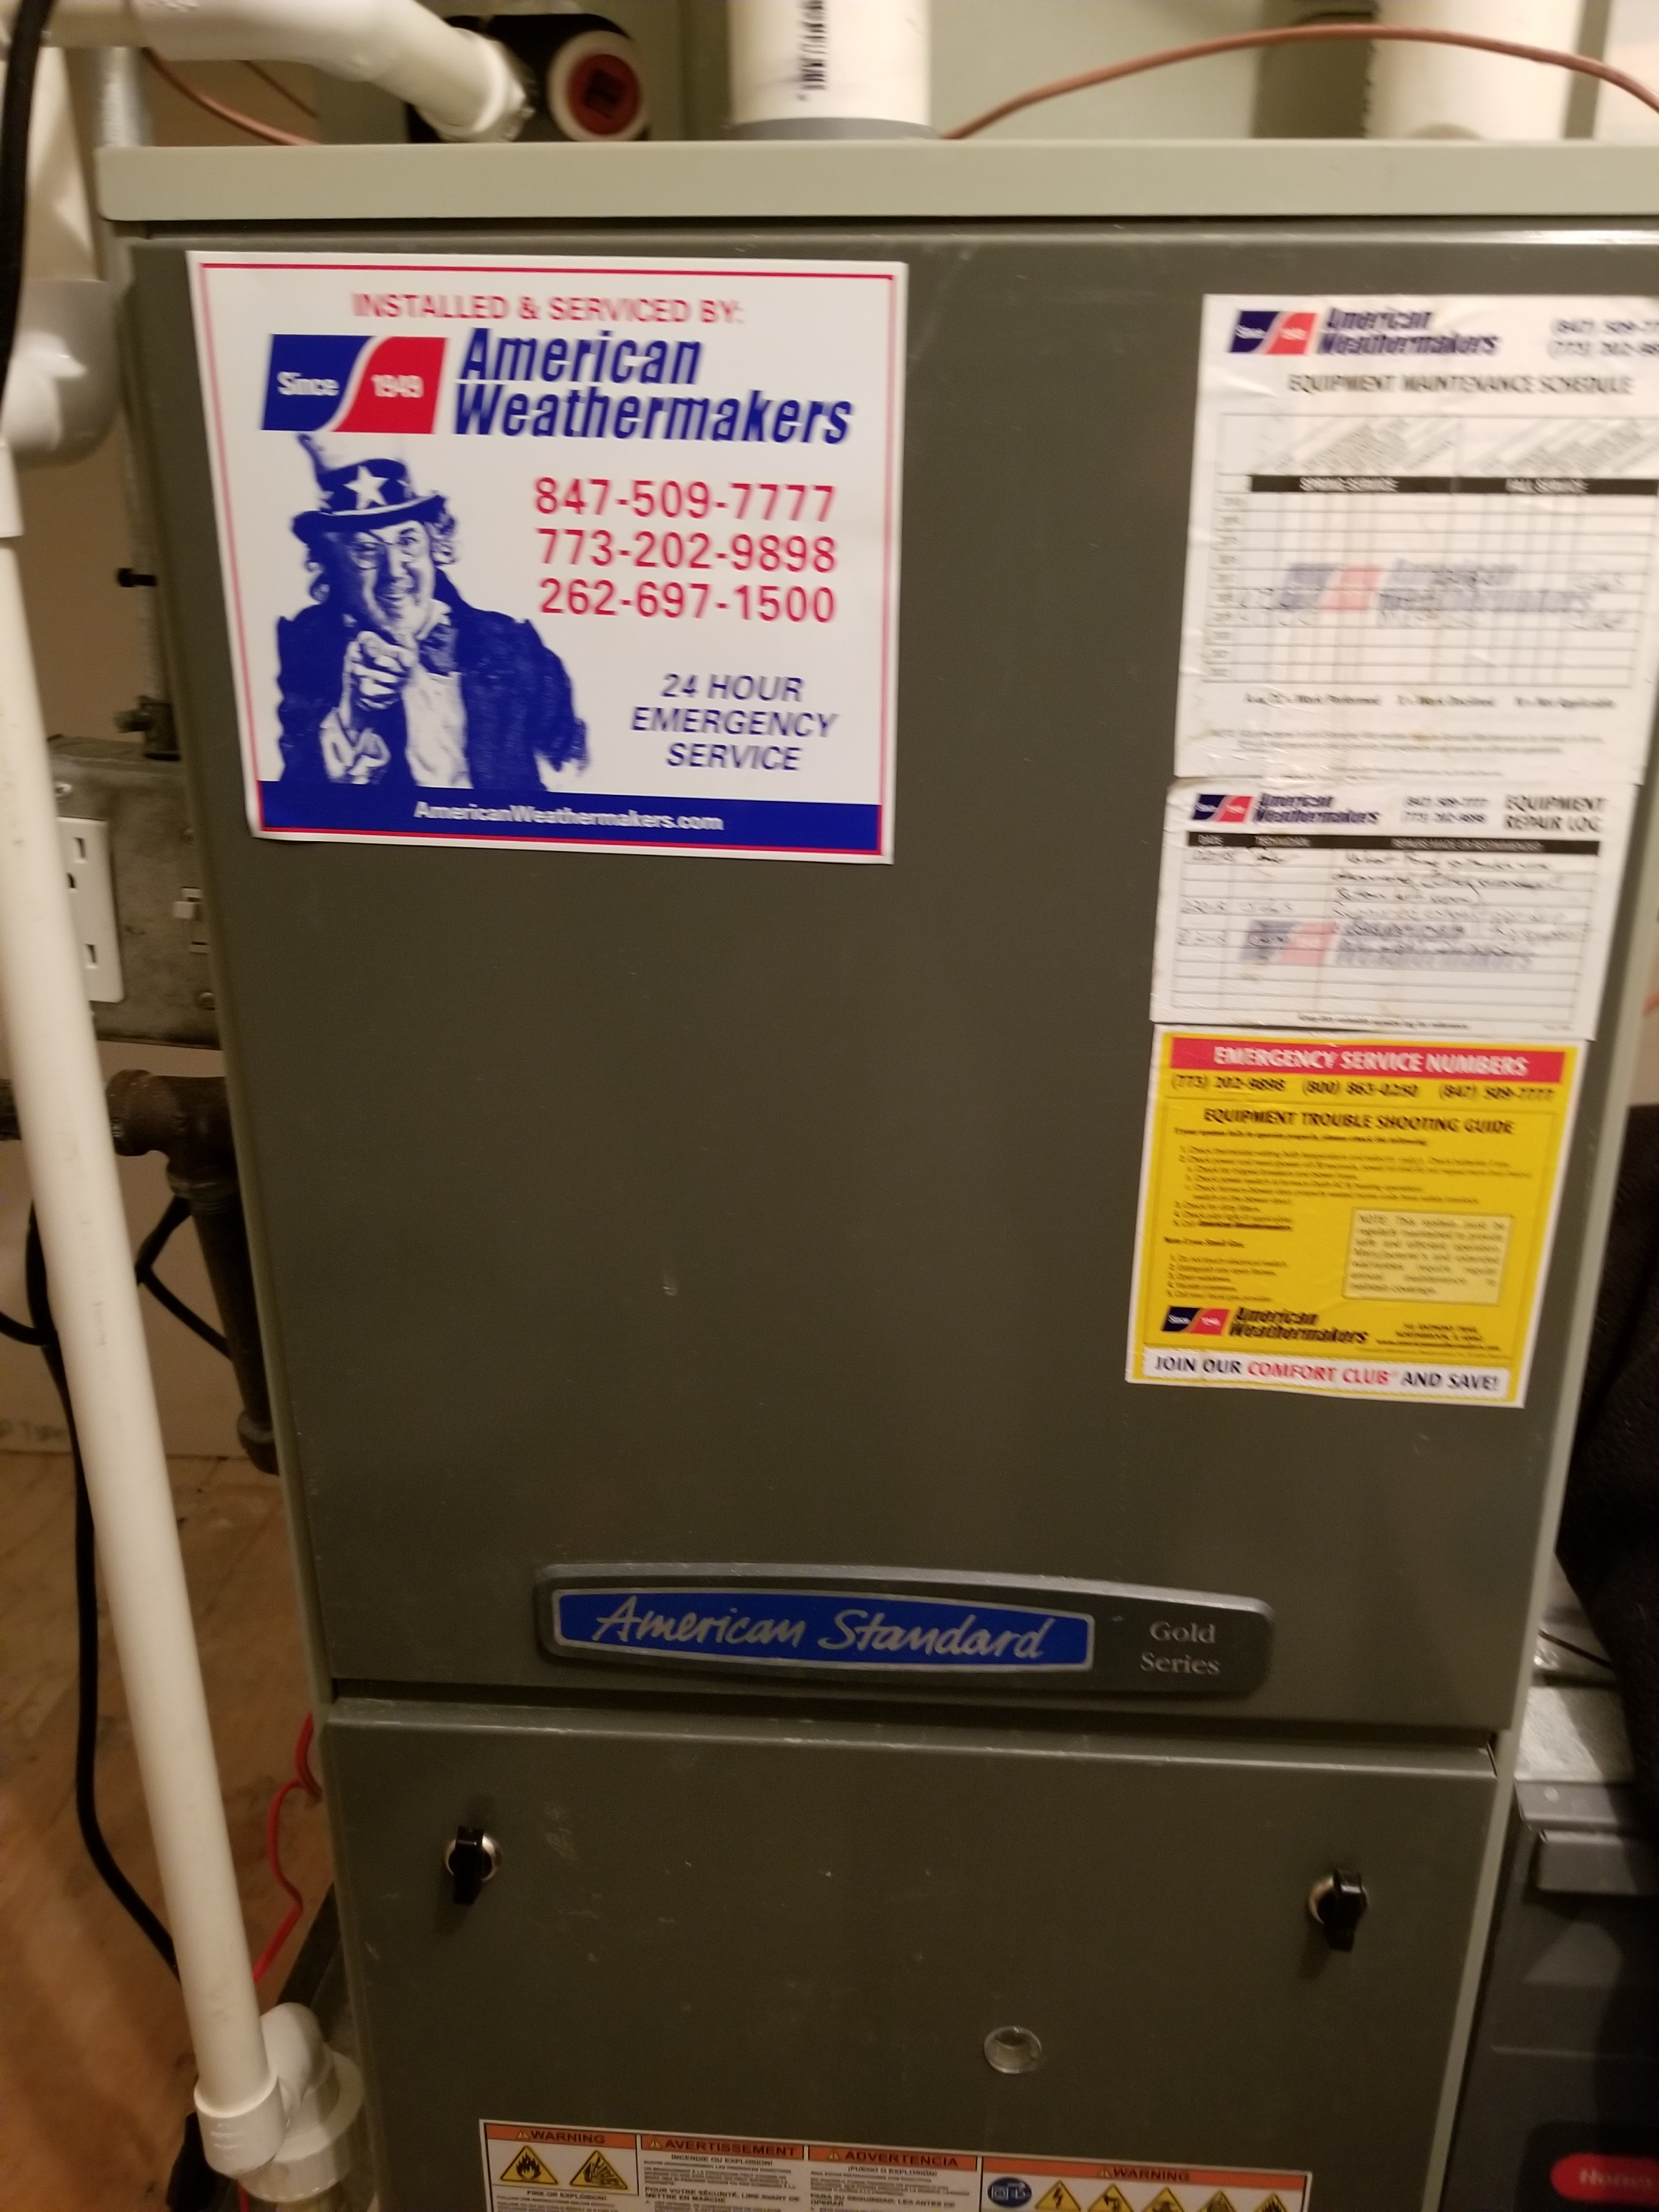 Repaired the American Standard furnace and made adjustments to improve the overall efficiency and life expectancy of the equipment